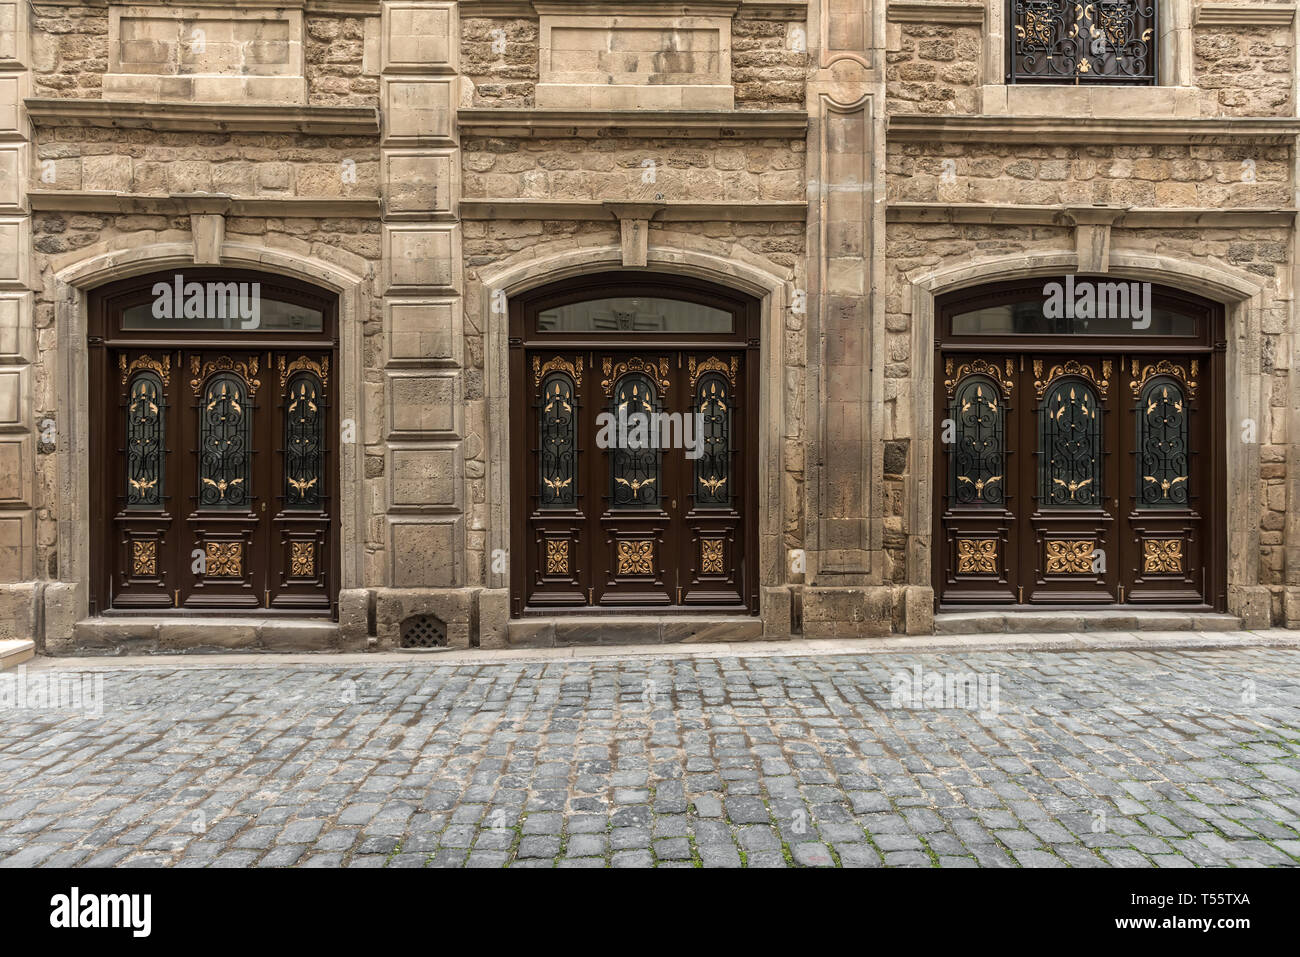 Ancient architectural doors in the old town - Stock Image